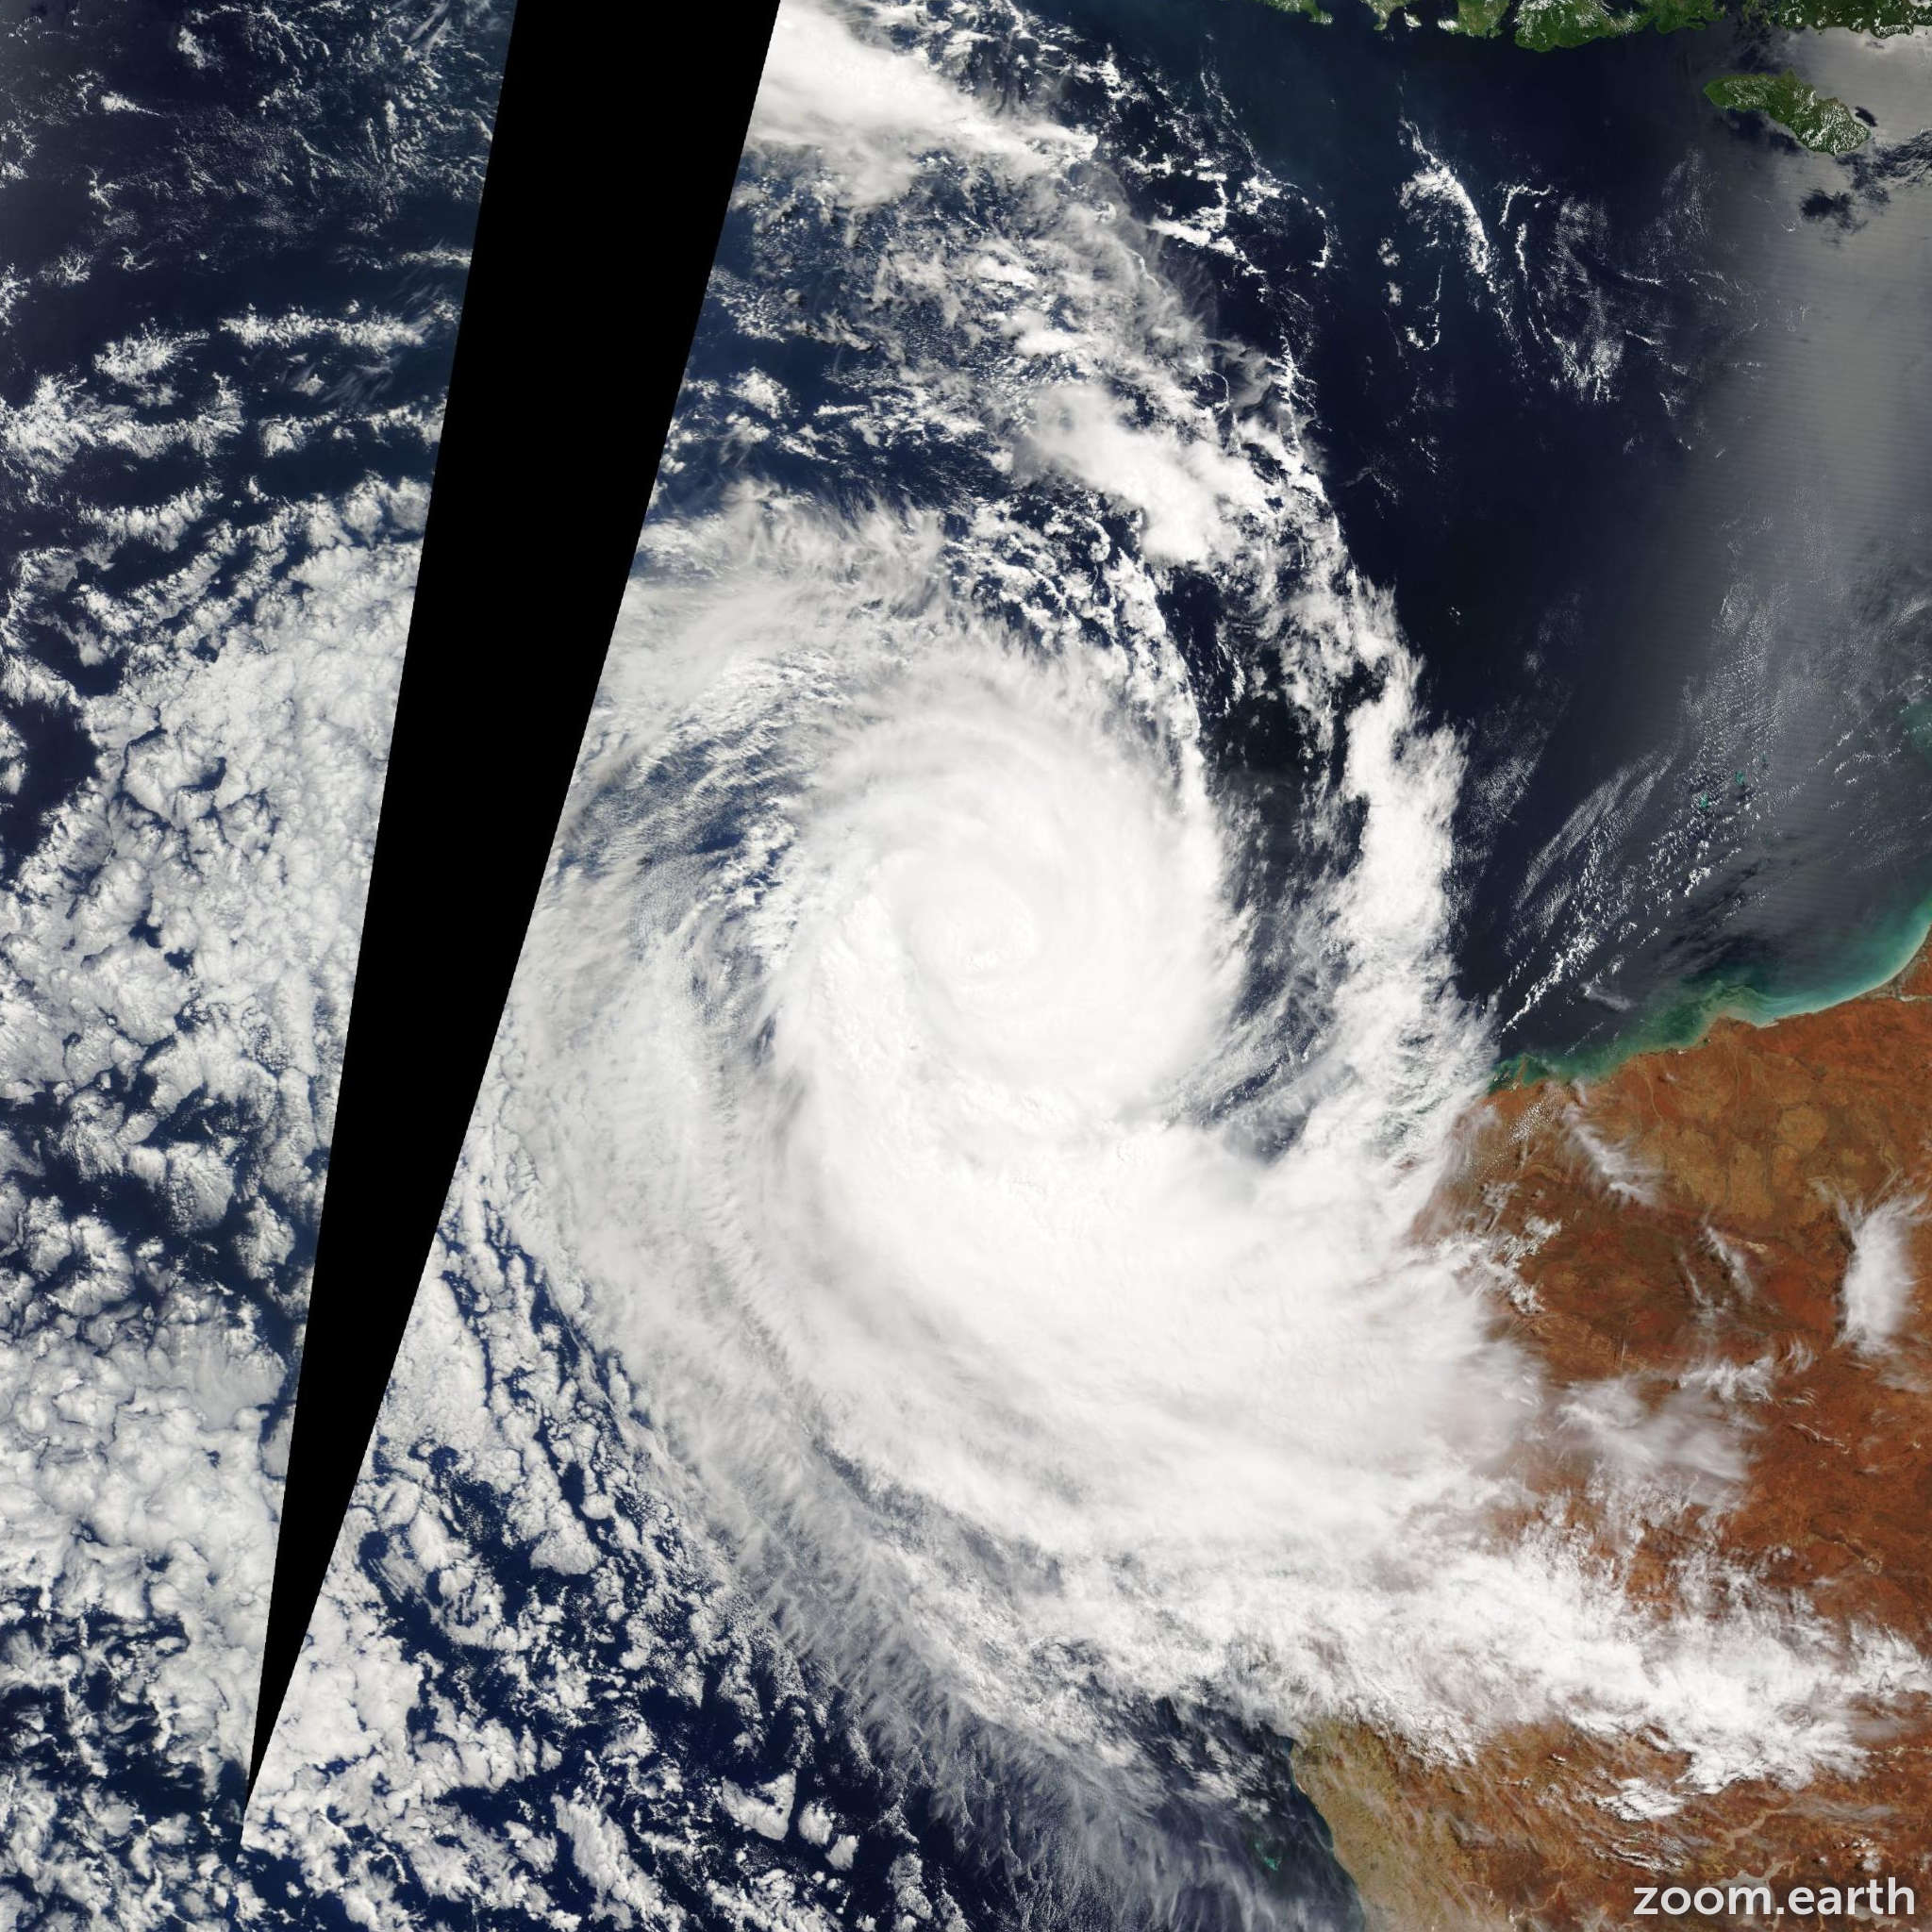 Satellite image of Cyclone Willy 2005